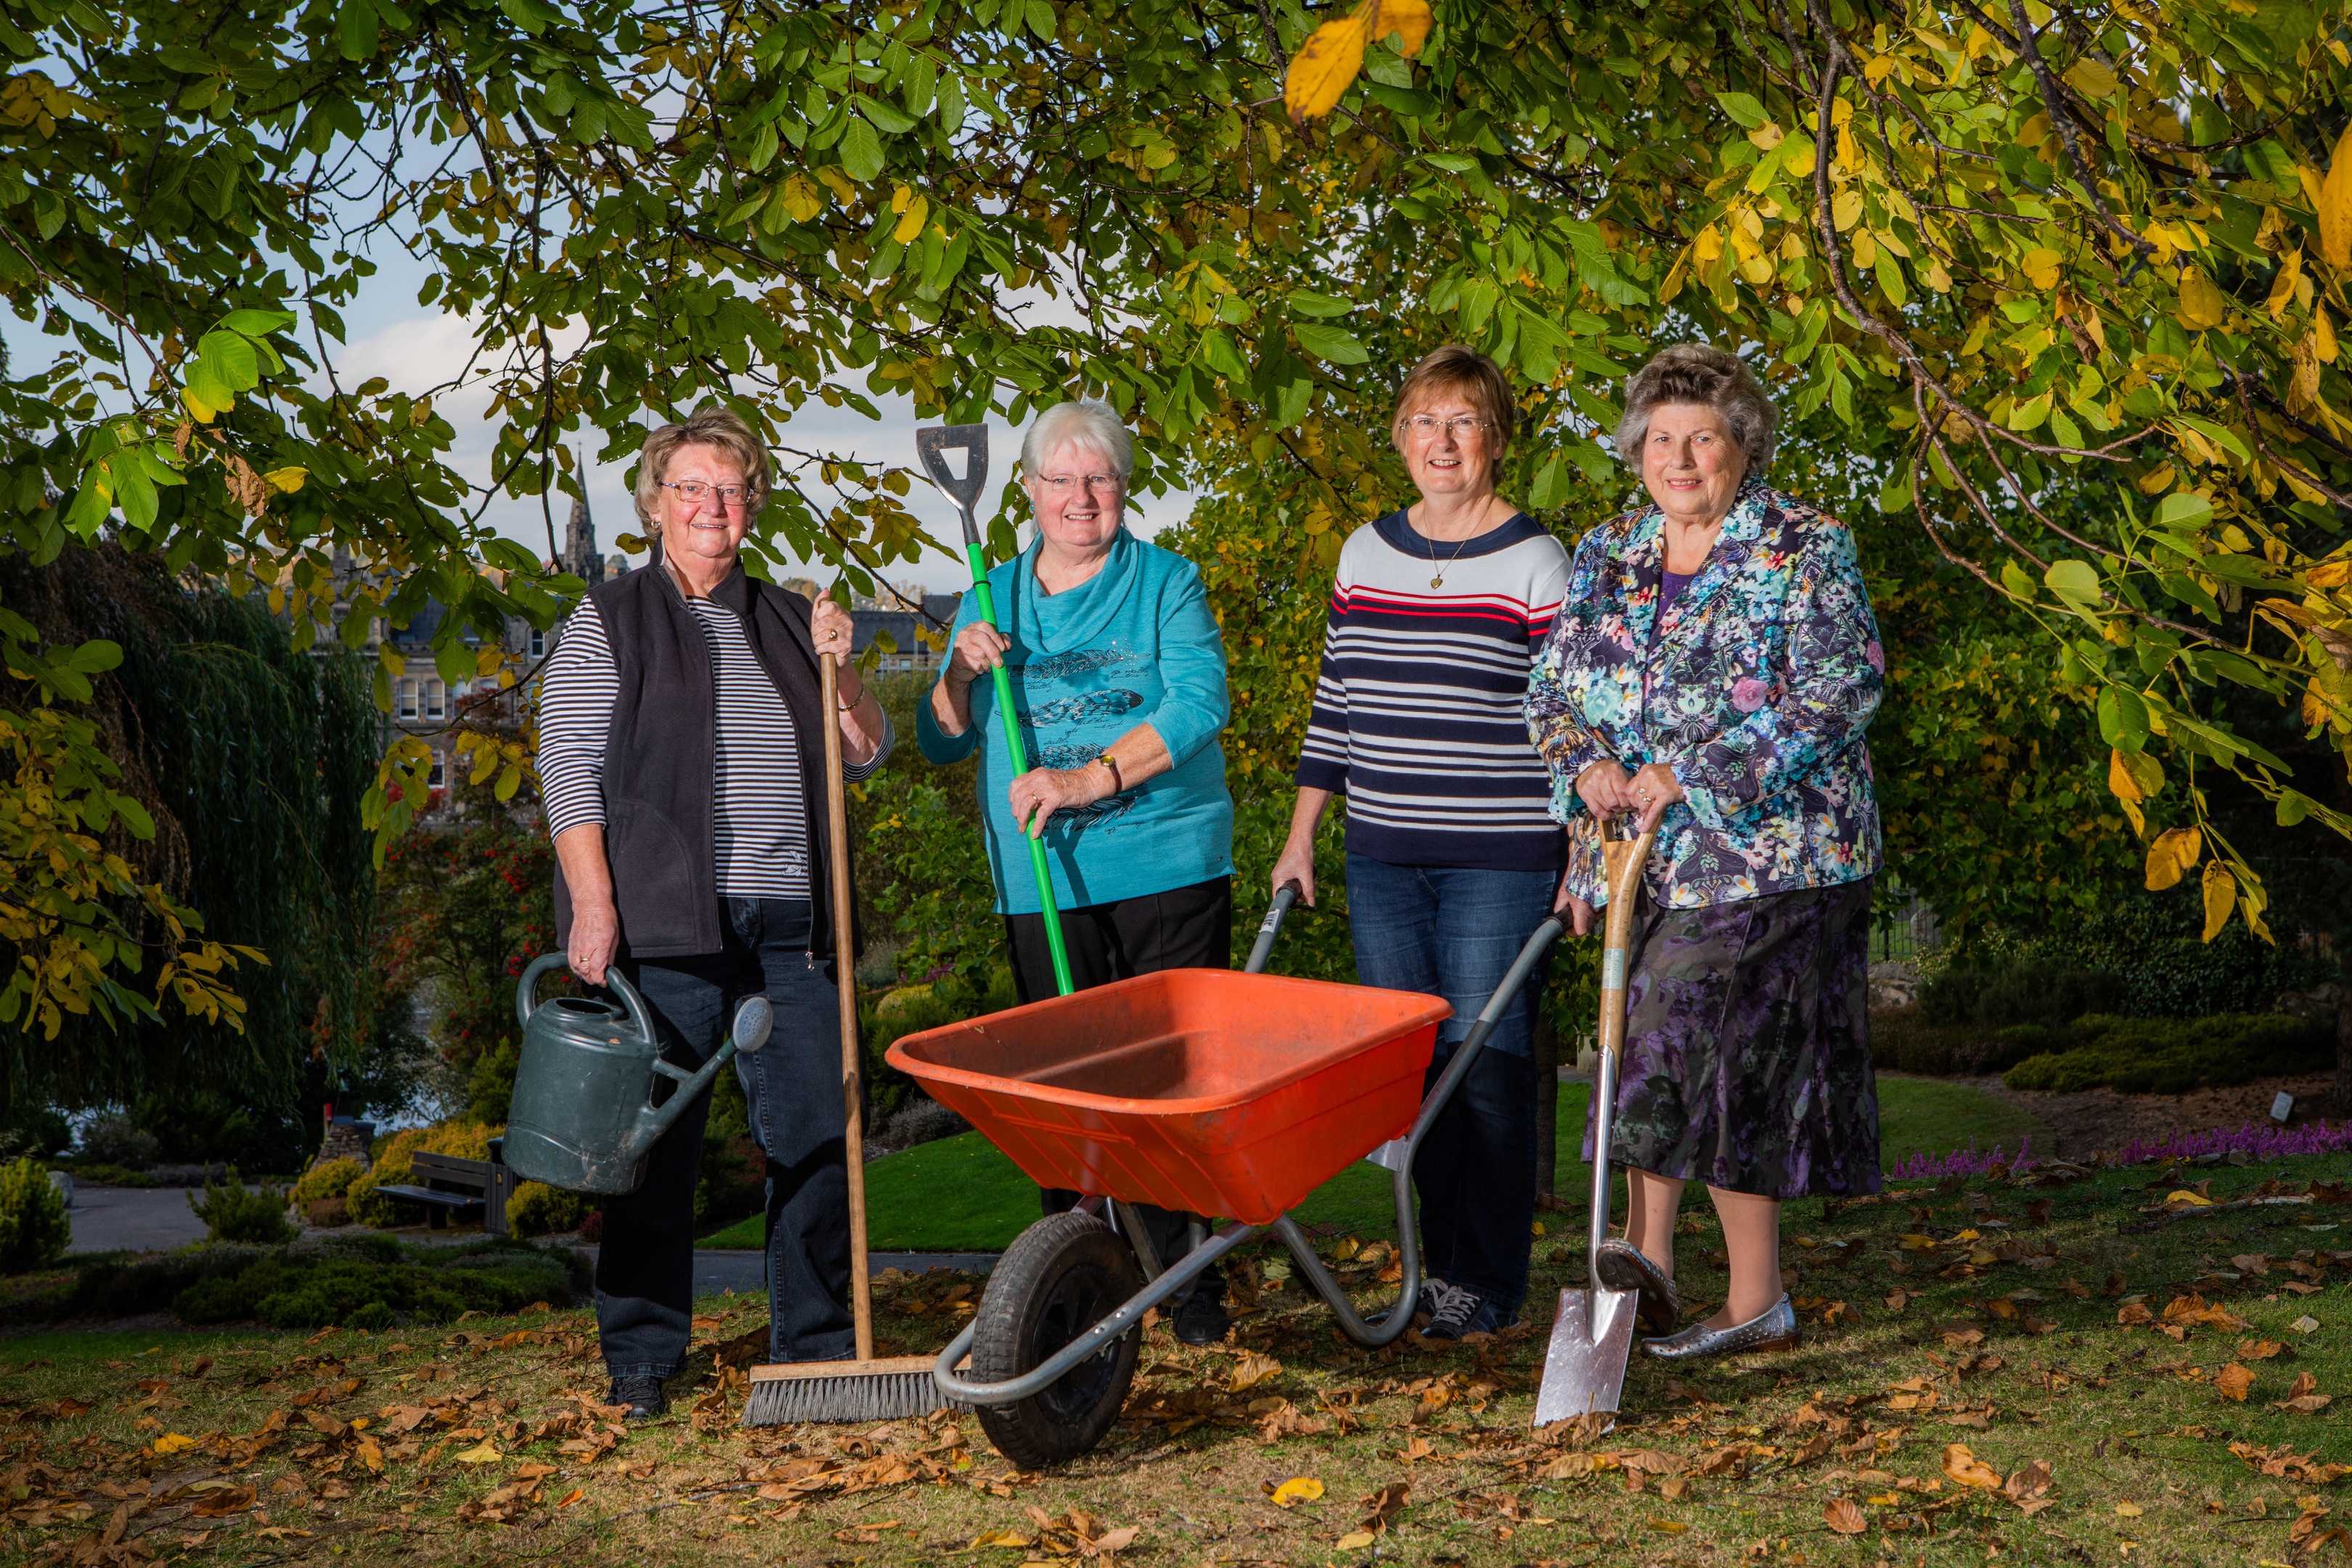 Members of the Royal Horticultural Society of Perthshire are appealing for new members to save the 200-year-old society. From left: Pat Scotland, Barbara McDonald, Gillian Sharp and Vera Taylor.